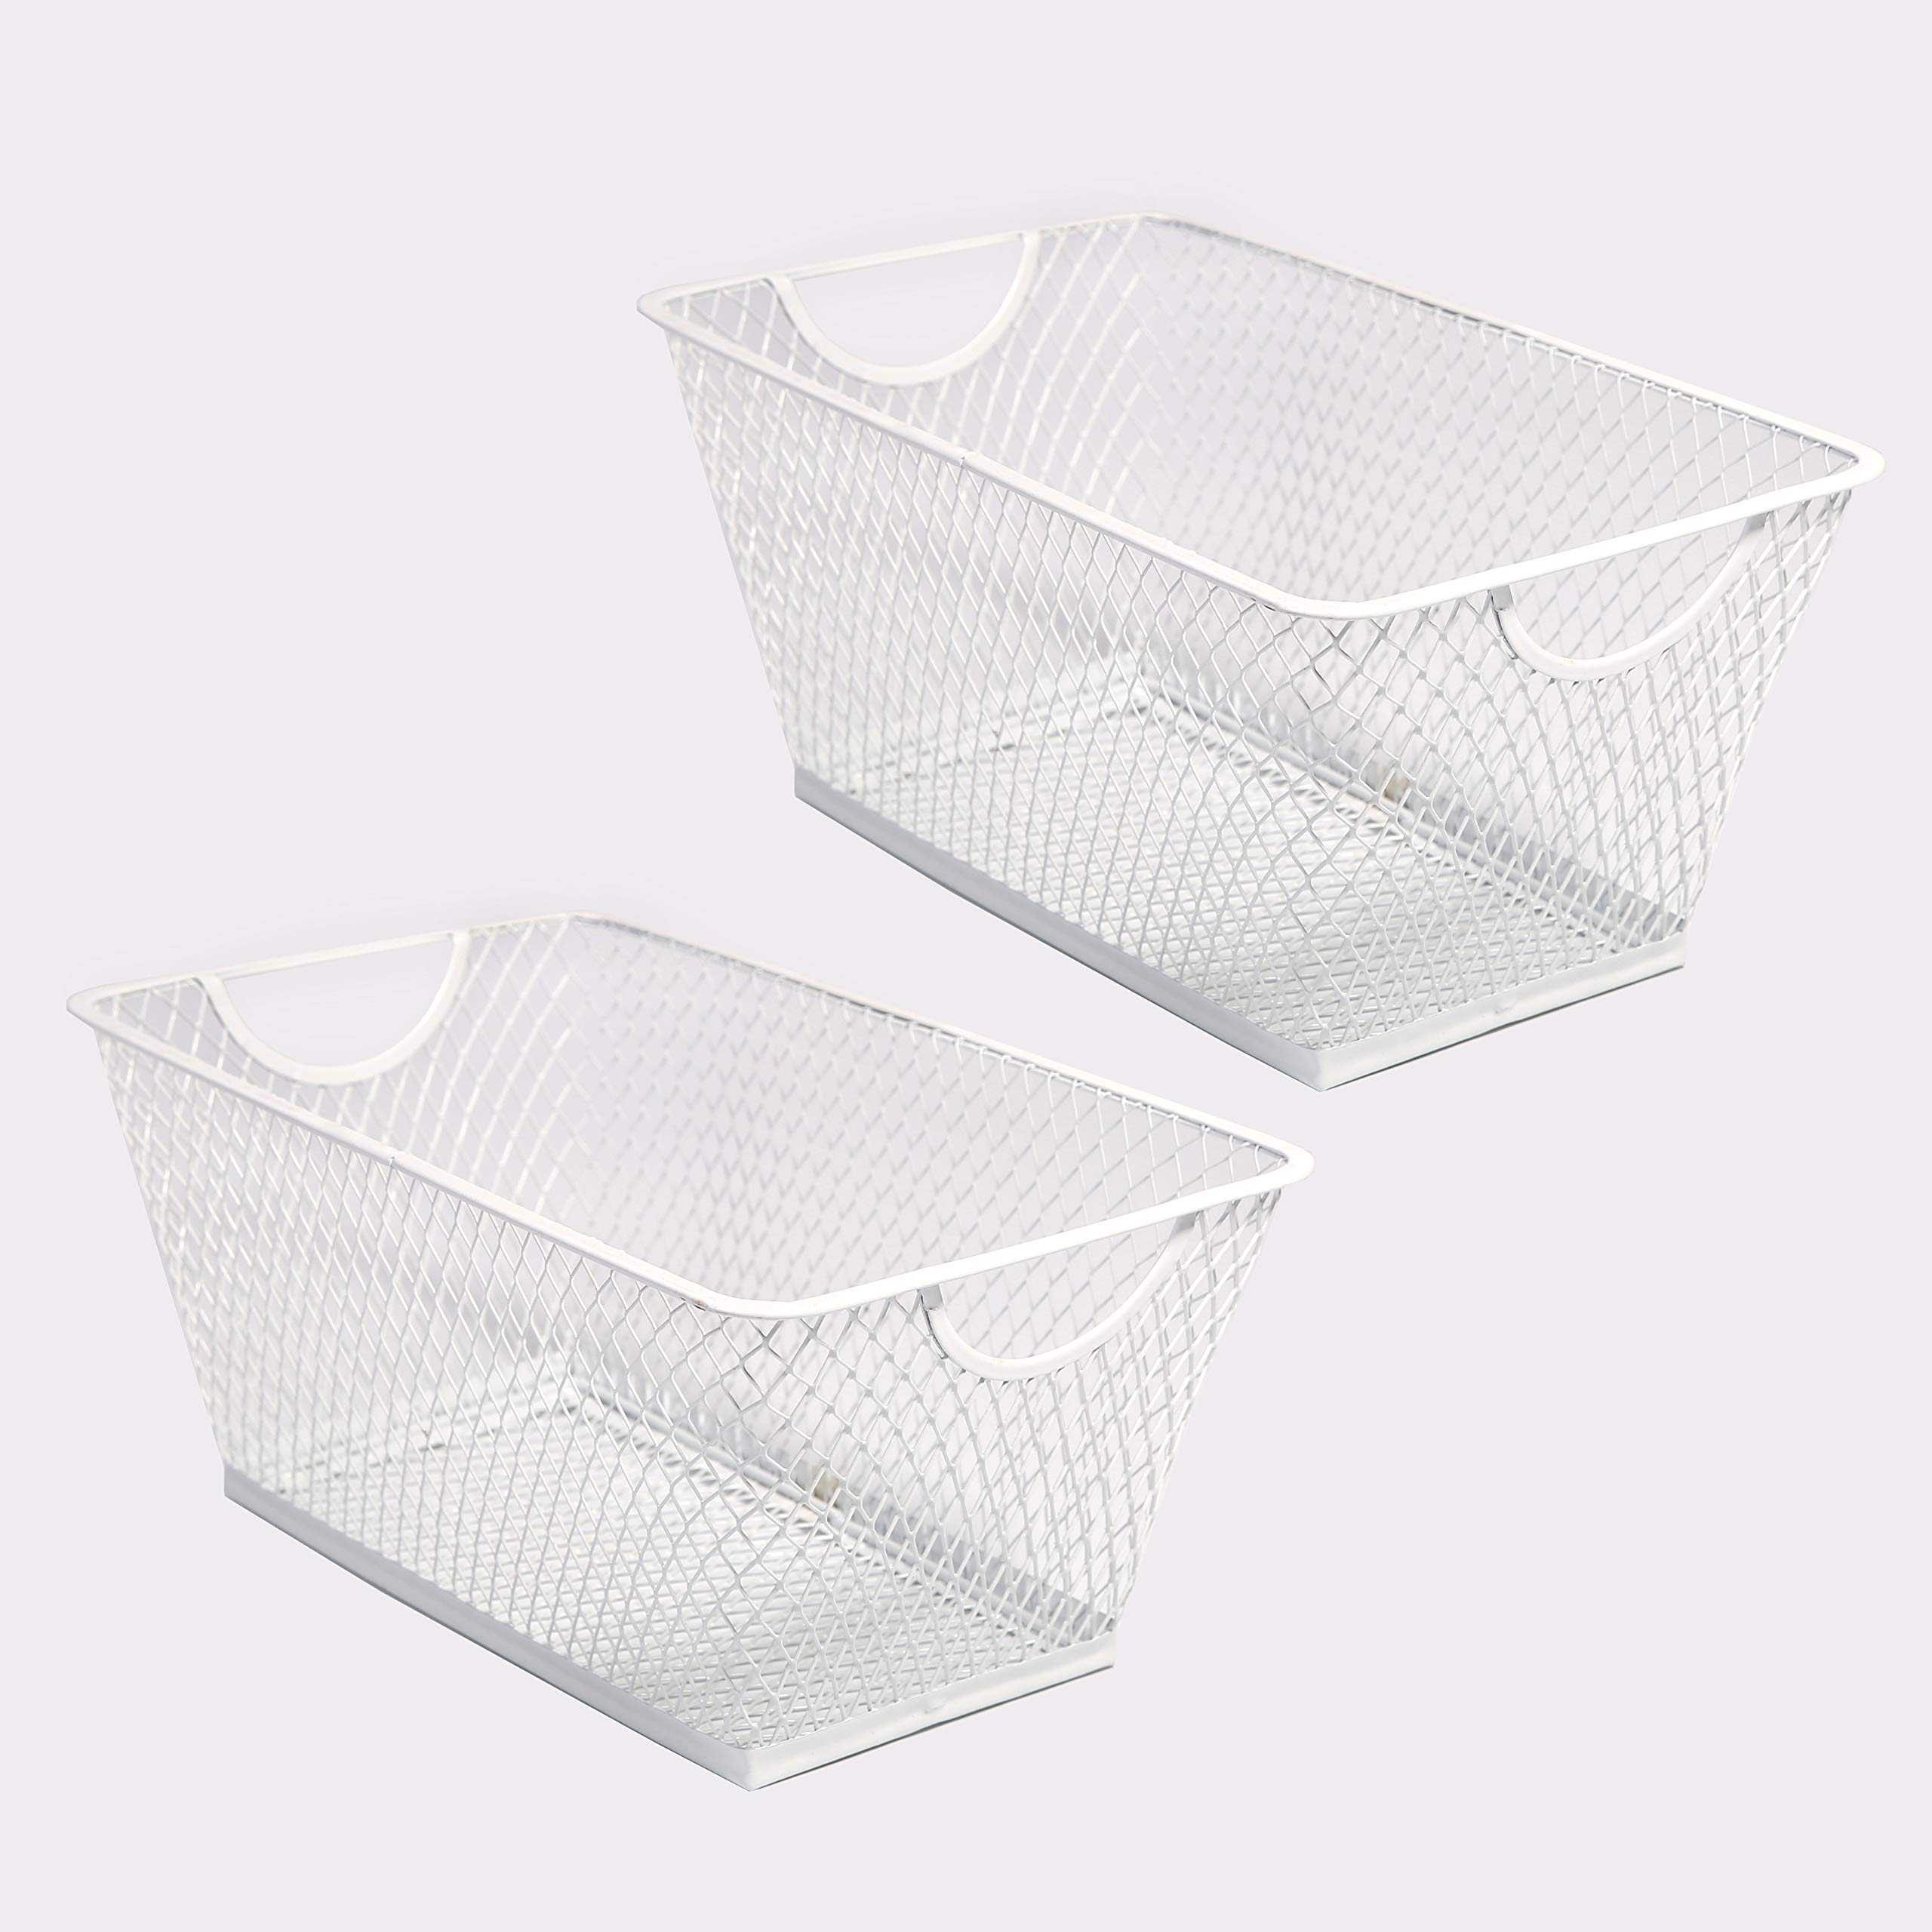 SLPR Office Desktop Organizer Wire Basket (Set of 2, White) | Classroom Craft Room Kitchen Pantry Garage Desk Stackable Metal Tapered Storage Bin by SLPR (Image #1)